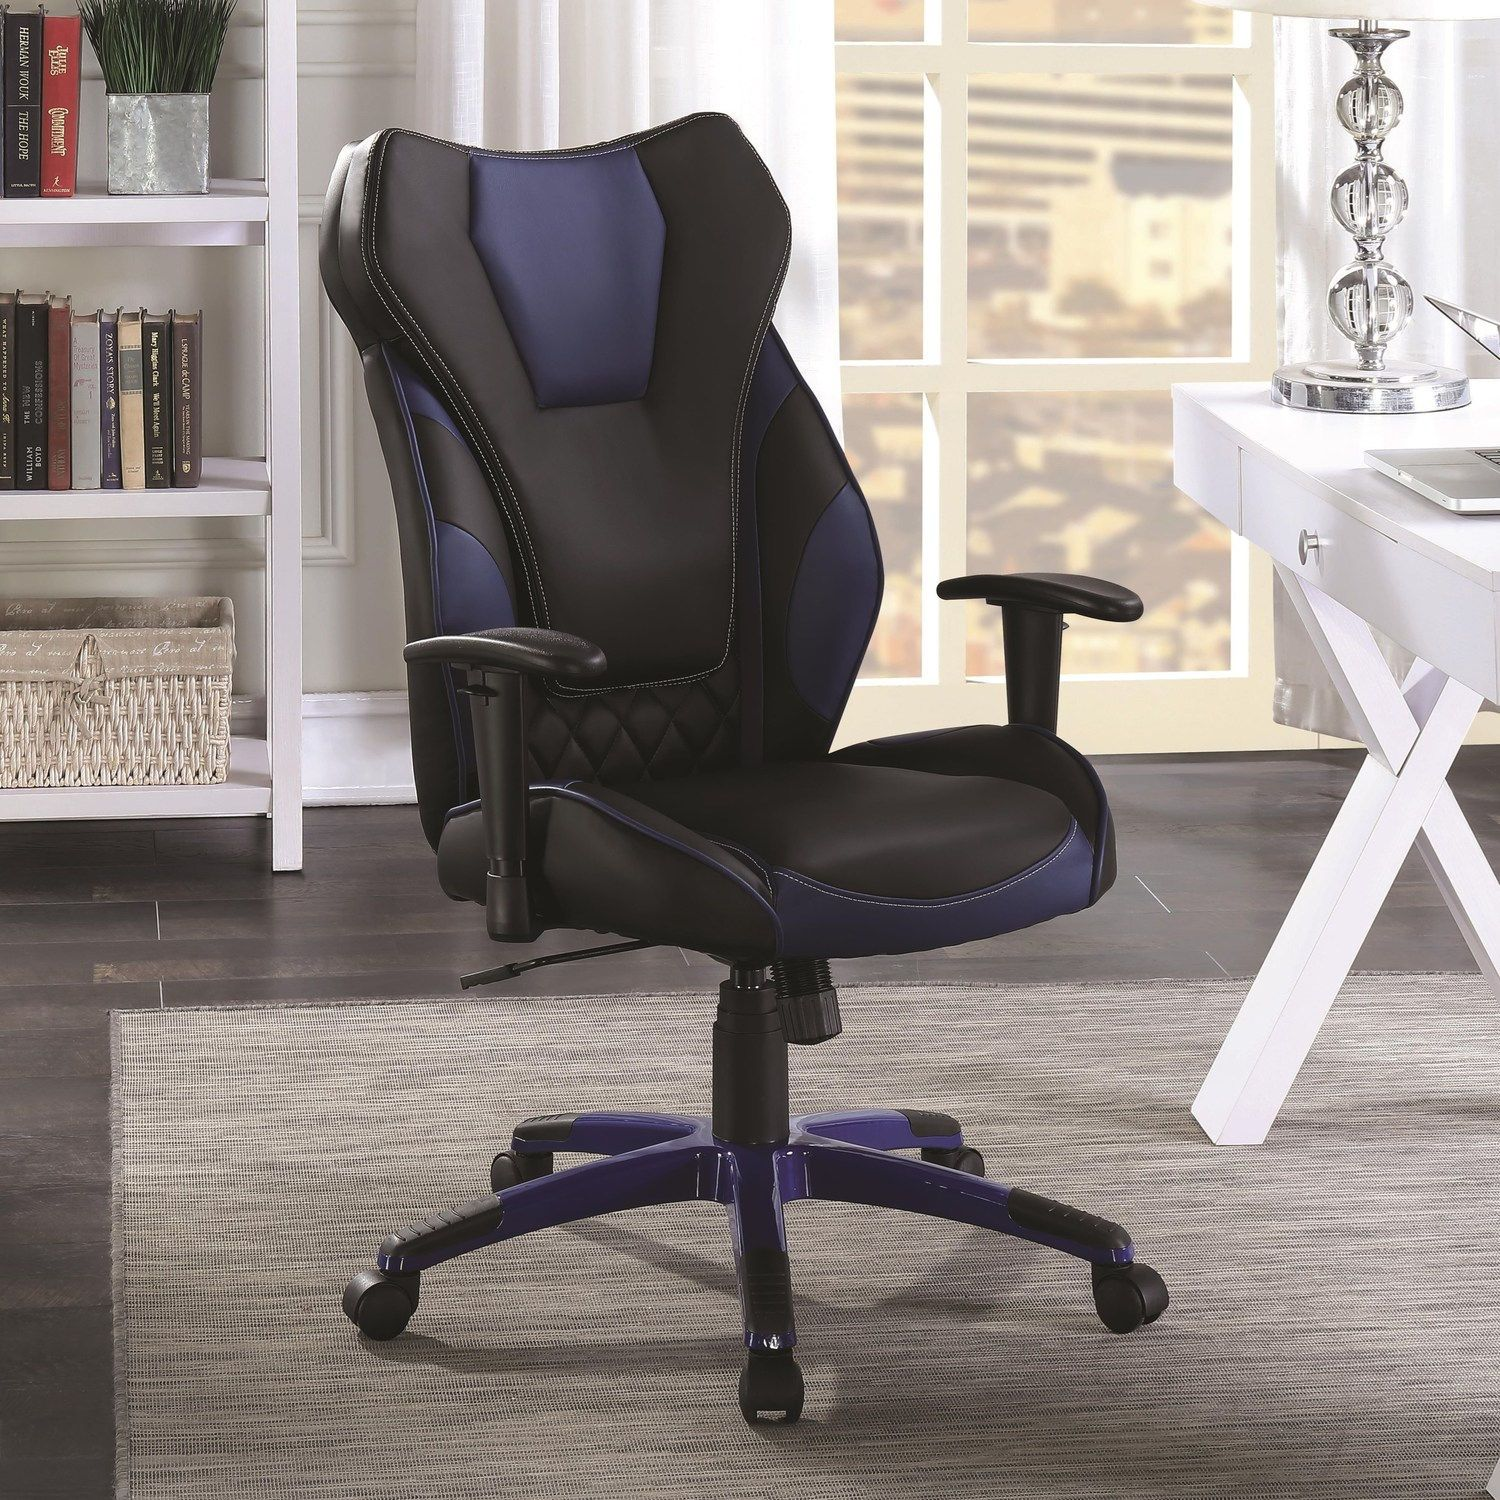 Cs468 Computer Chair In 2020 High Back Office Chair Leather Chair Adjustable Office Chair